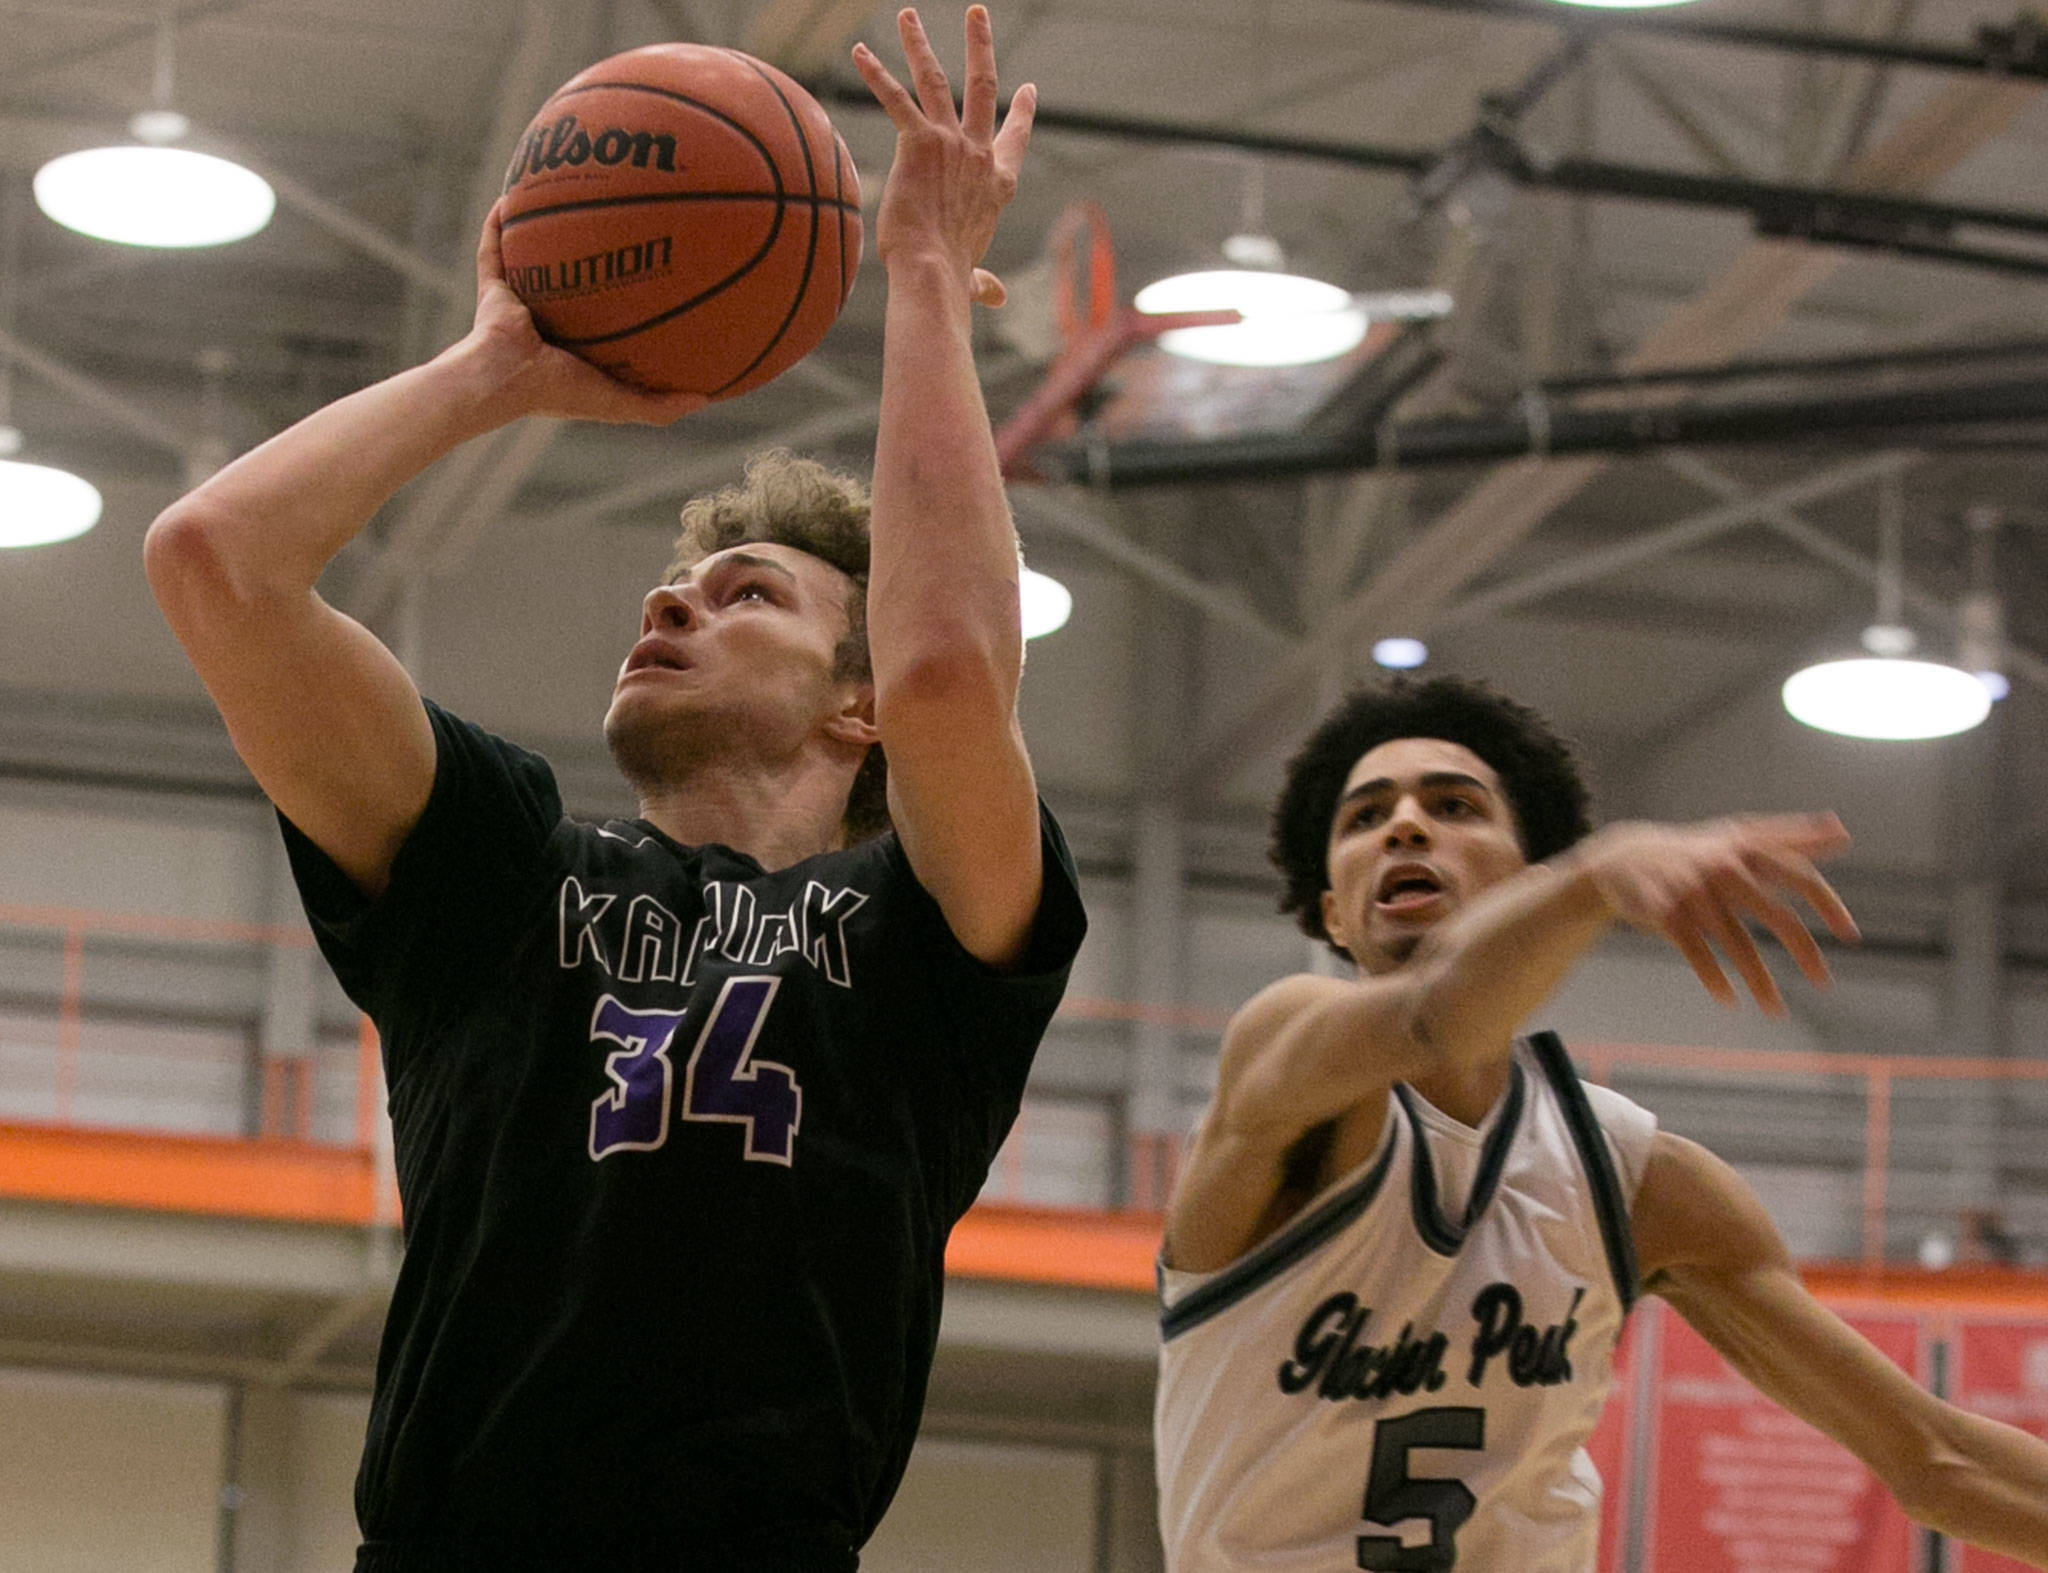 Kamiak's Daniel Sharpe attempts a shot as Glacier Peak's Trey Lawrence defends during the 4A district championship game on Feb. 15, 2018, at Everett Community College. (Kevin Clark / The Herald)